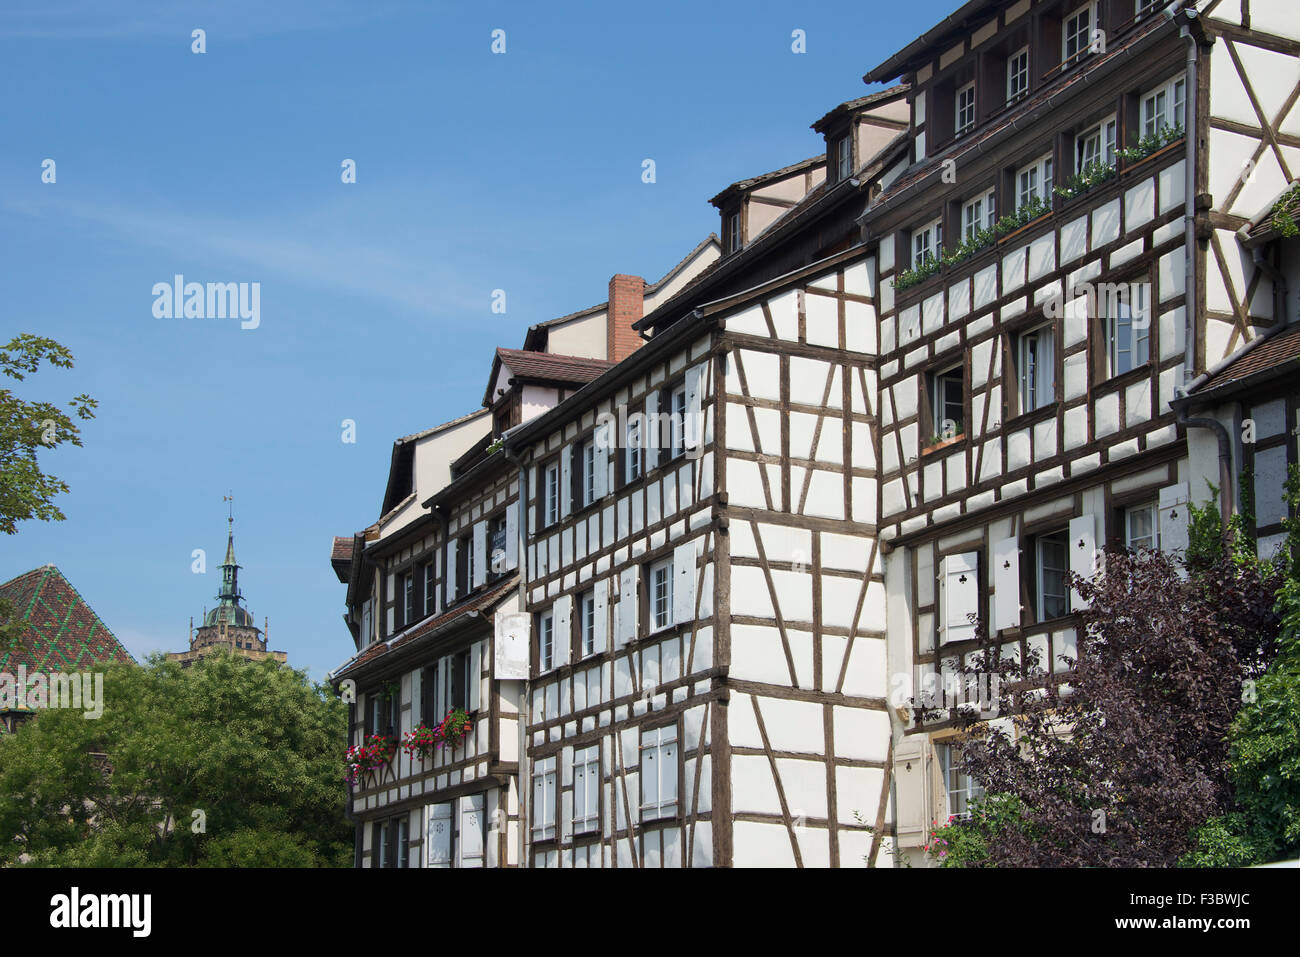 Beautiful traditional half timbered buildings Colmar Alsace France - Stock Image